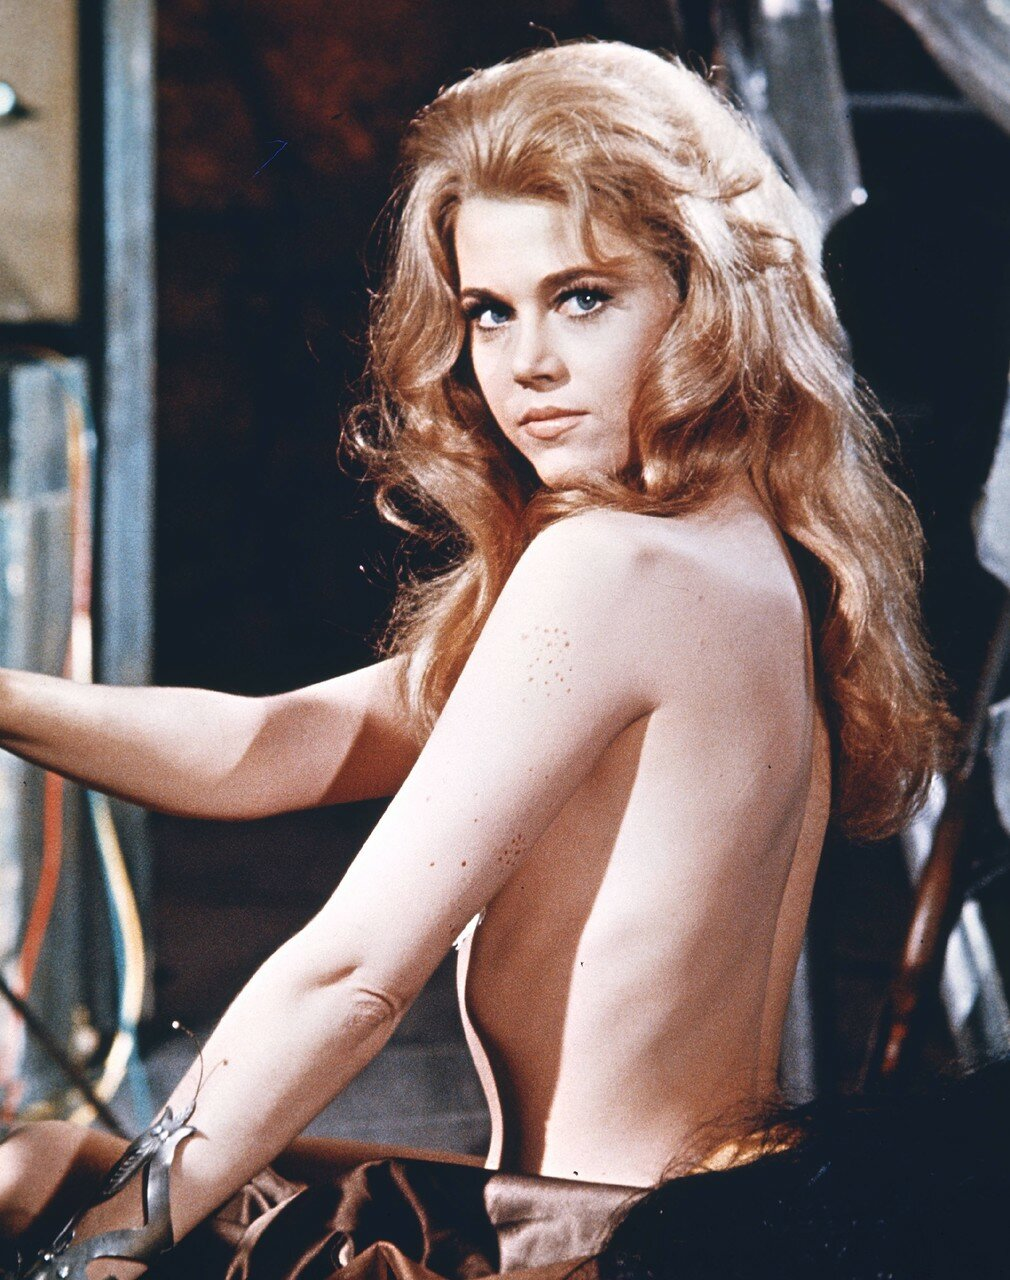 Jane FONDA in 'Barbarella' 1968